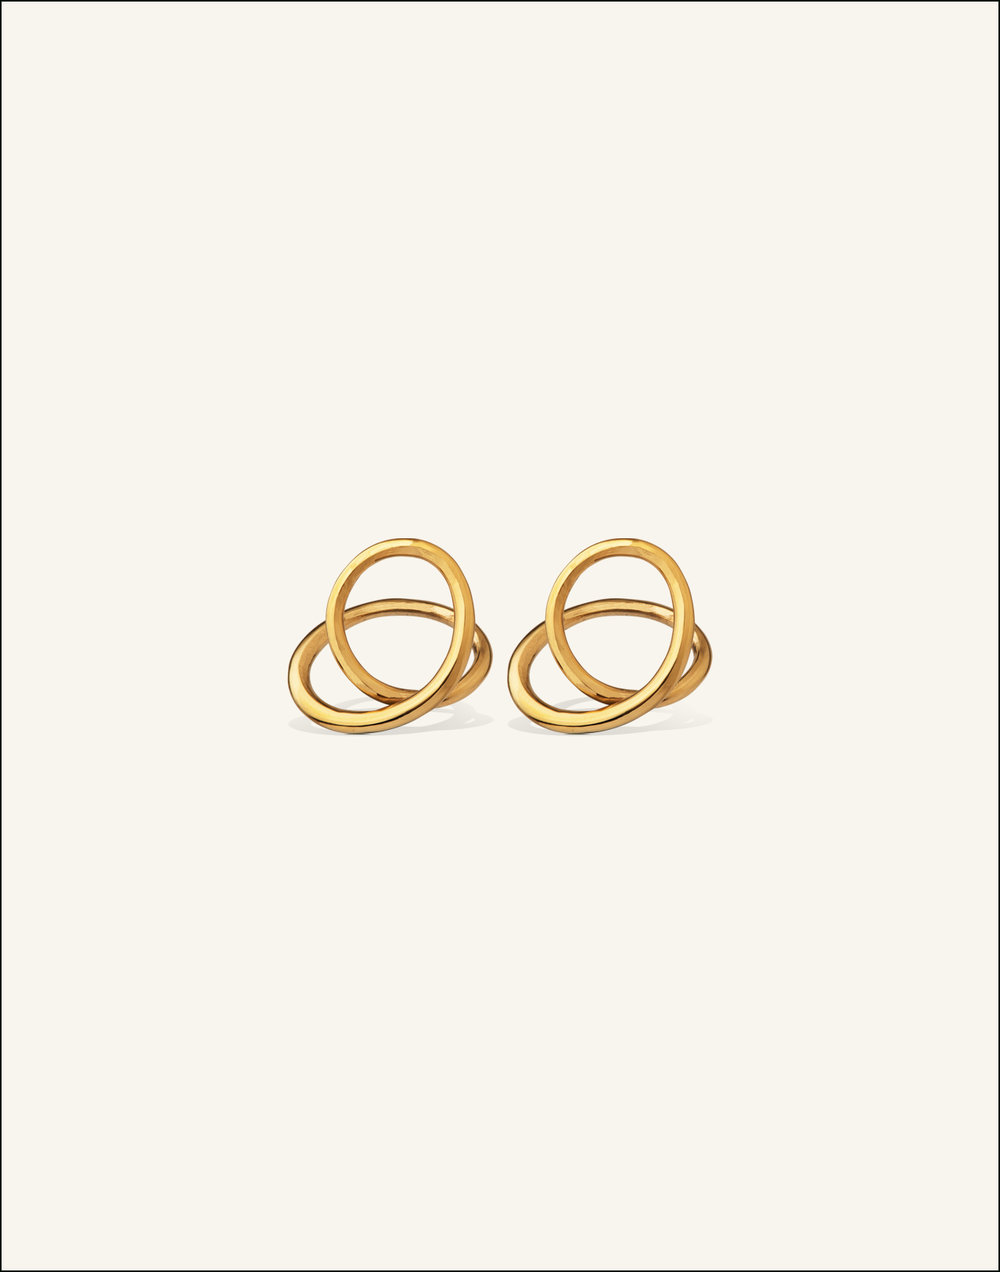 Completedworks-Earrings-The-Labyrinth-1-1.jpg